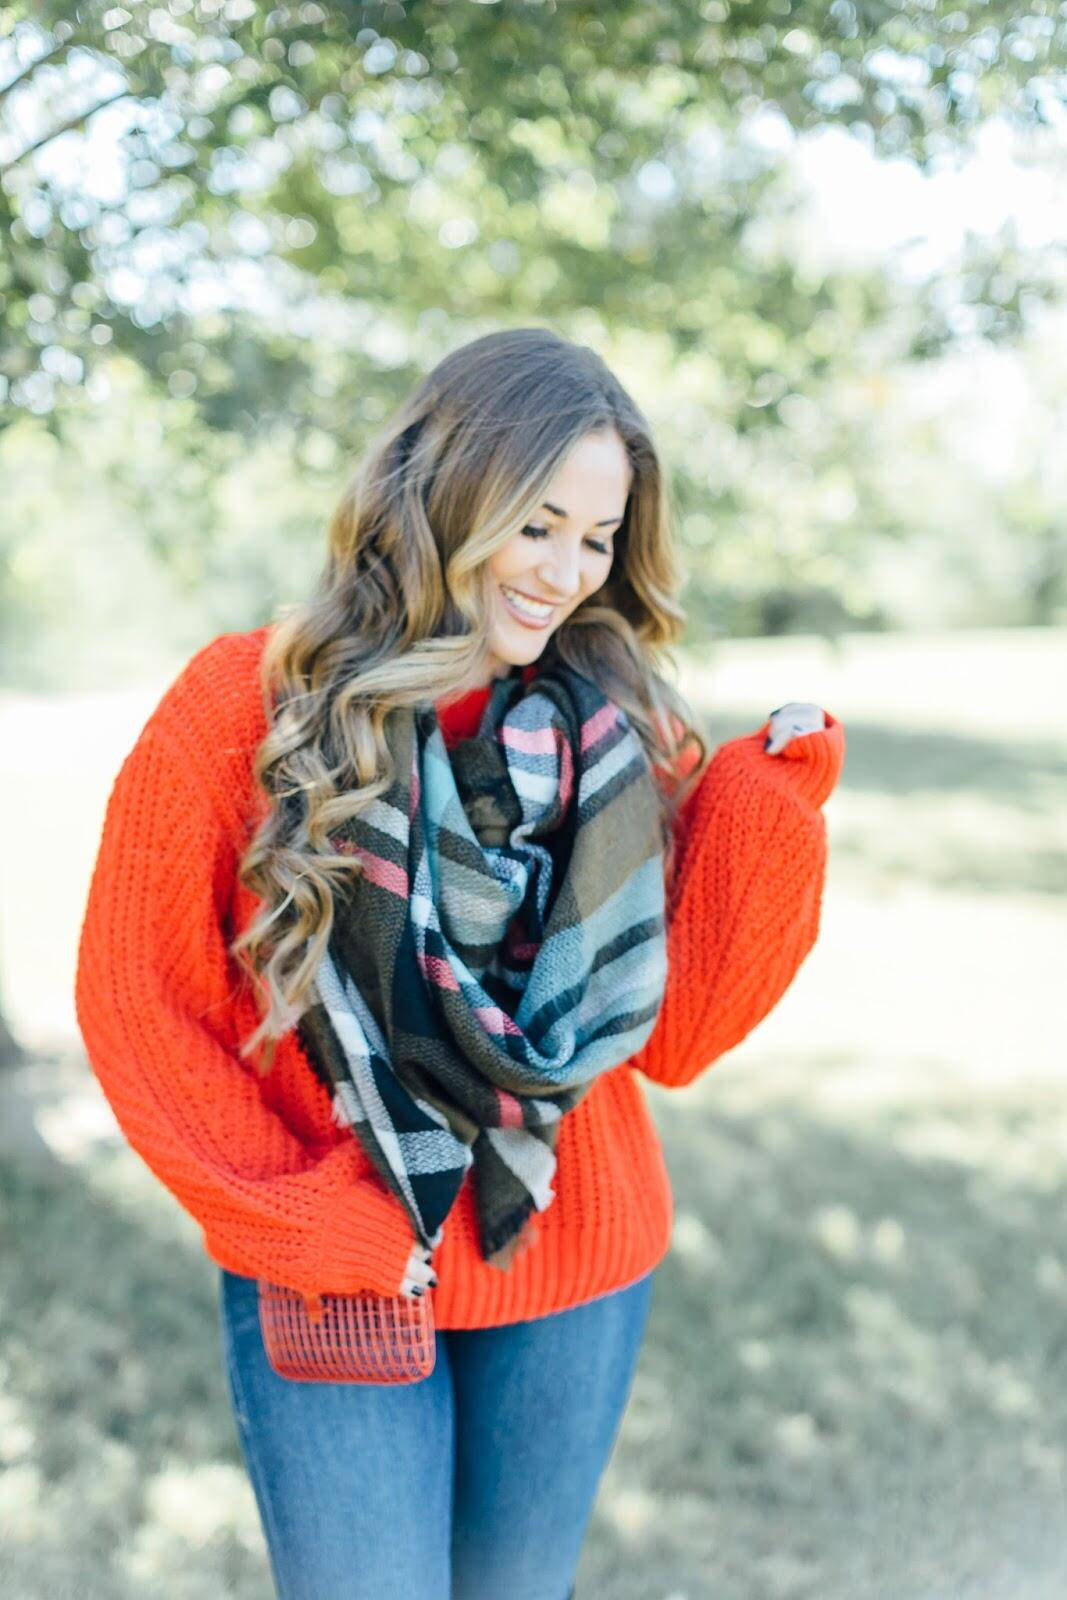 Trend Spin Linkup - Sweater Weather by East Memphis fashion blogger Walking in Memphis in High Heels